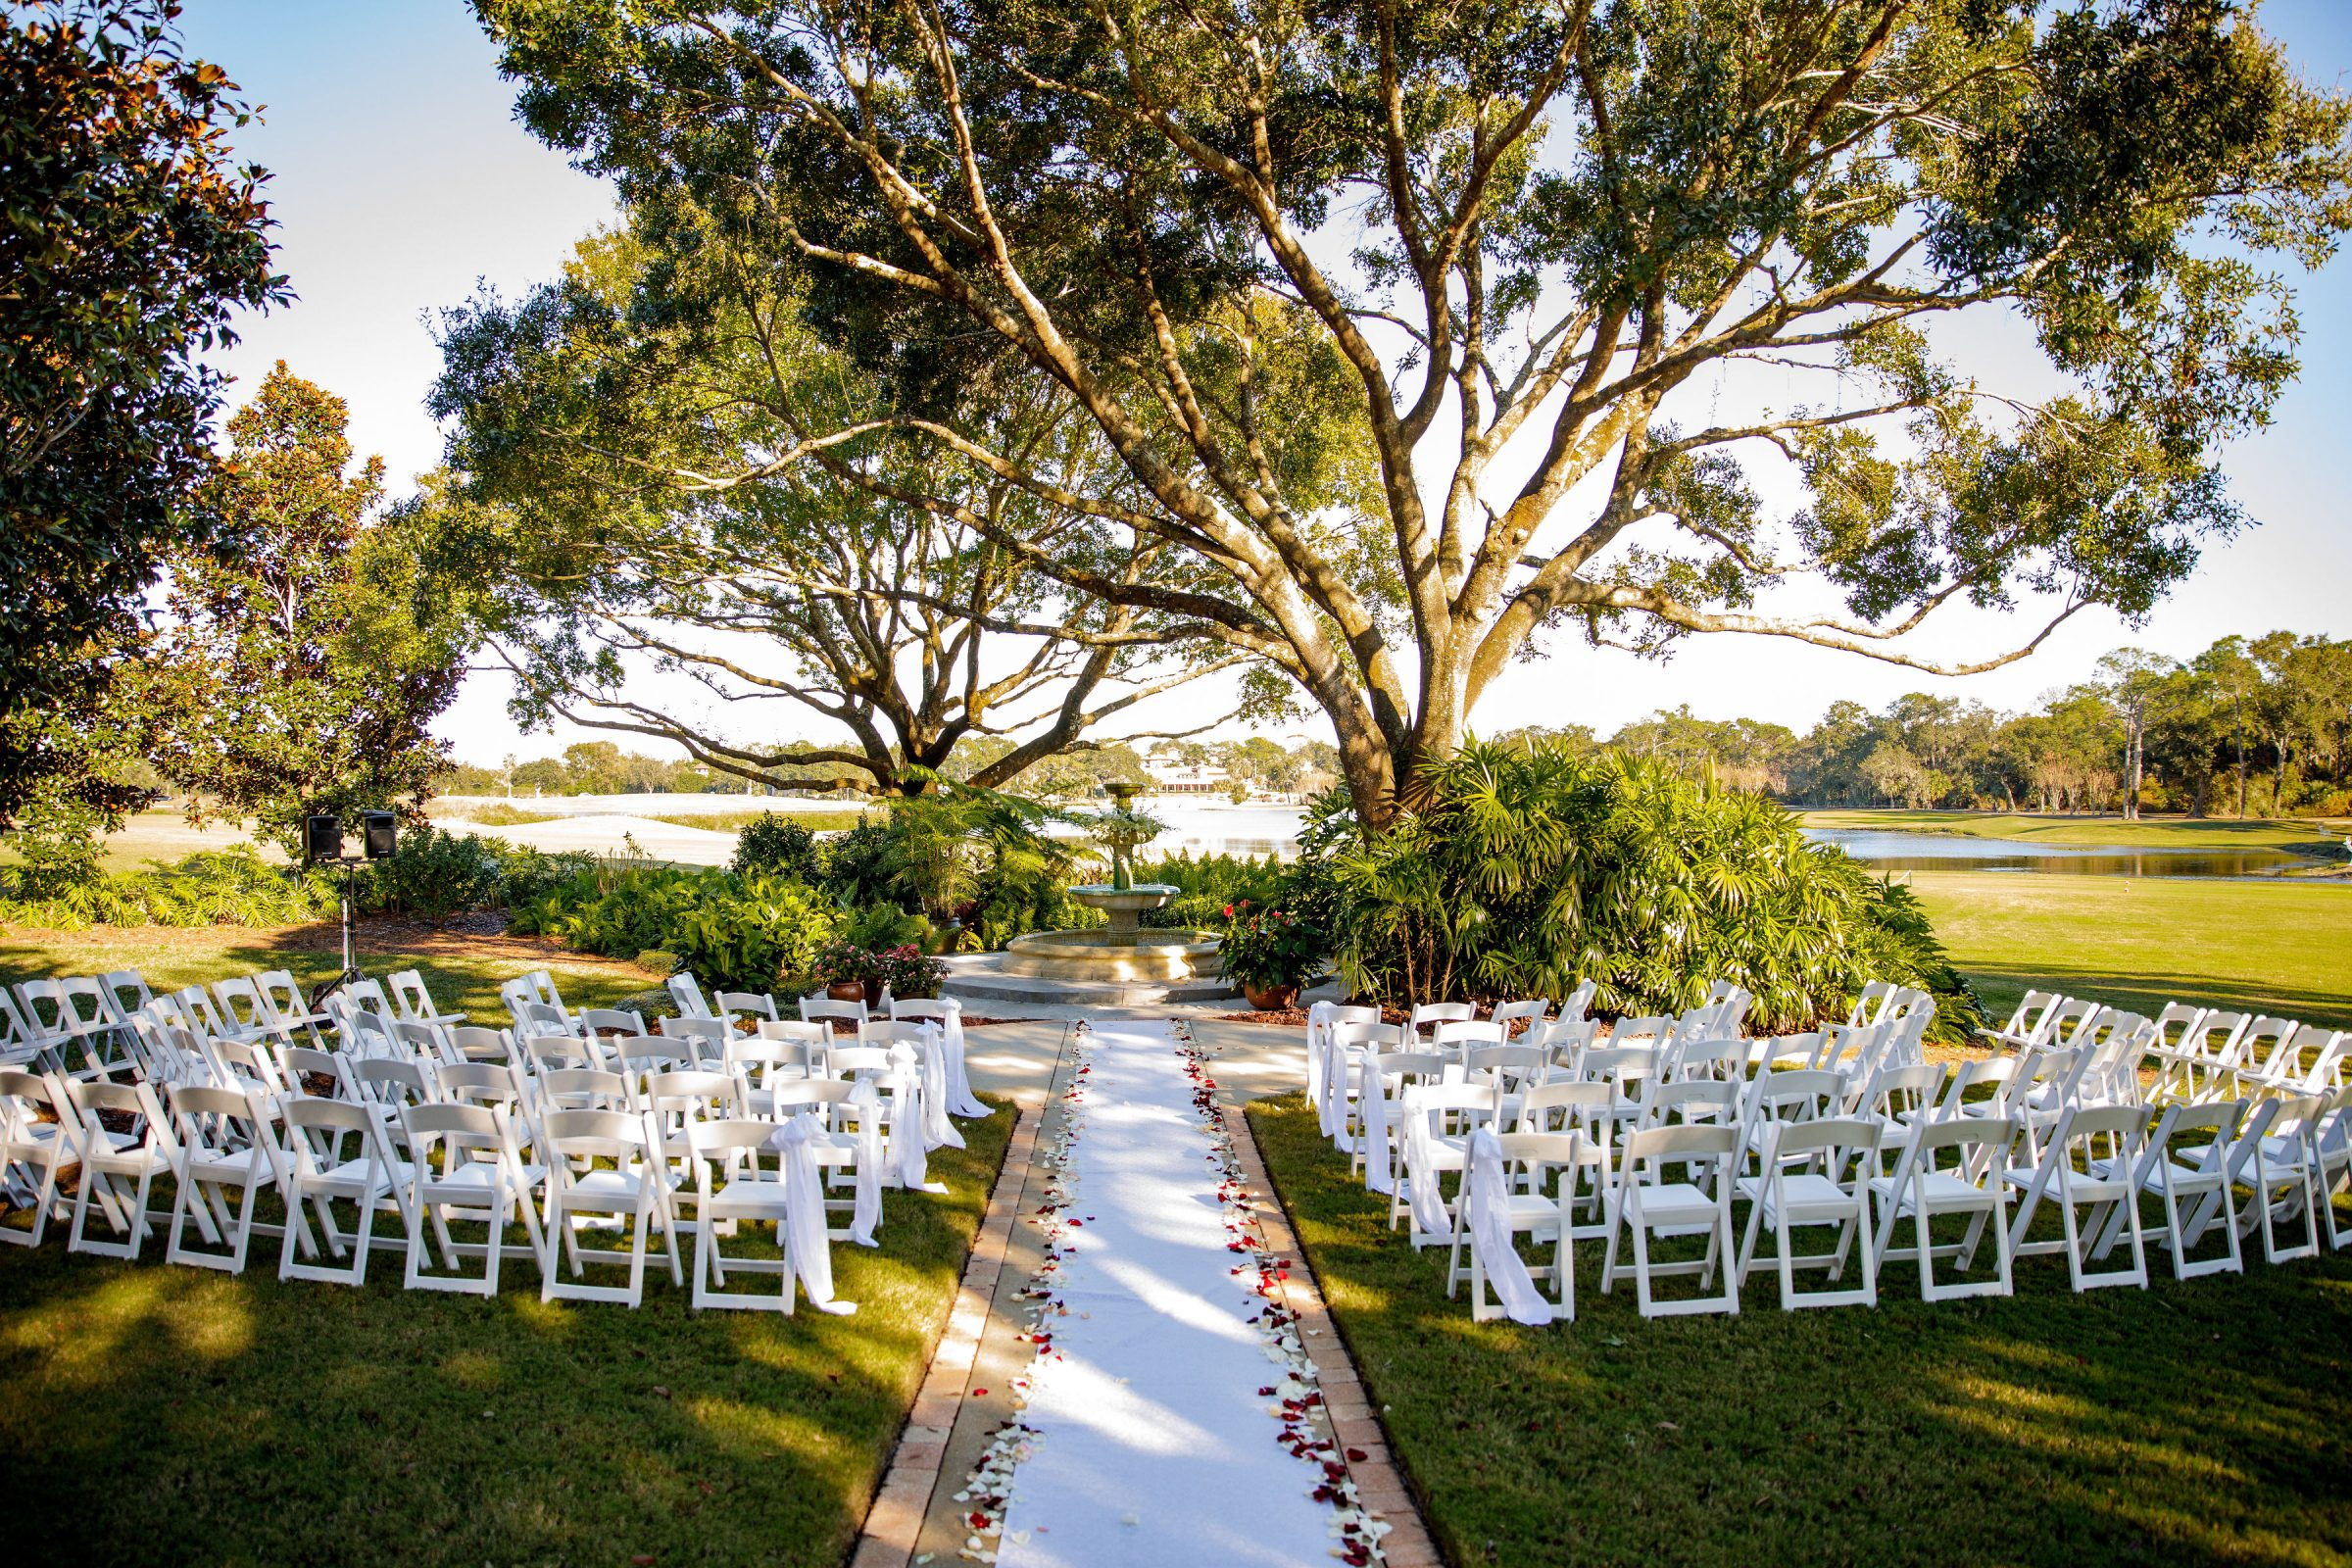 White chairs with white aisle and rose petals under an oak tree